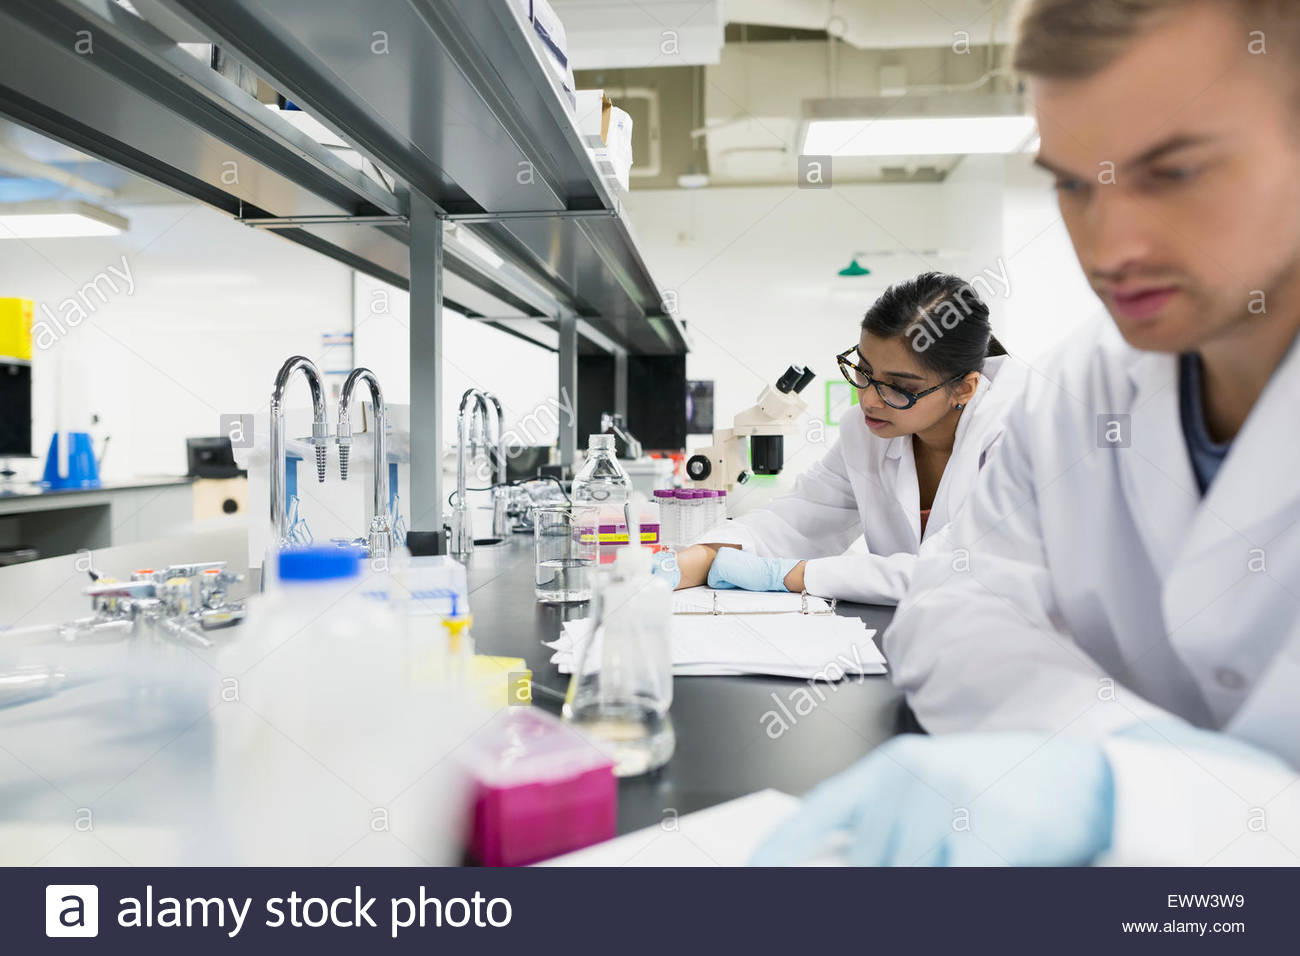 Science students conducting scientific experiment in laboratory - Stock Image